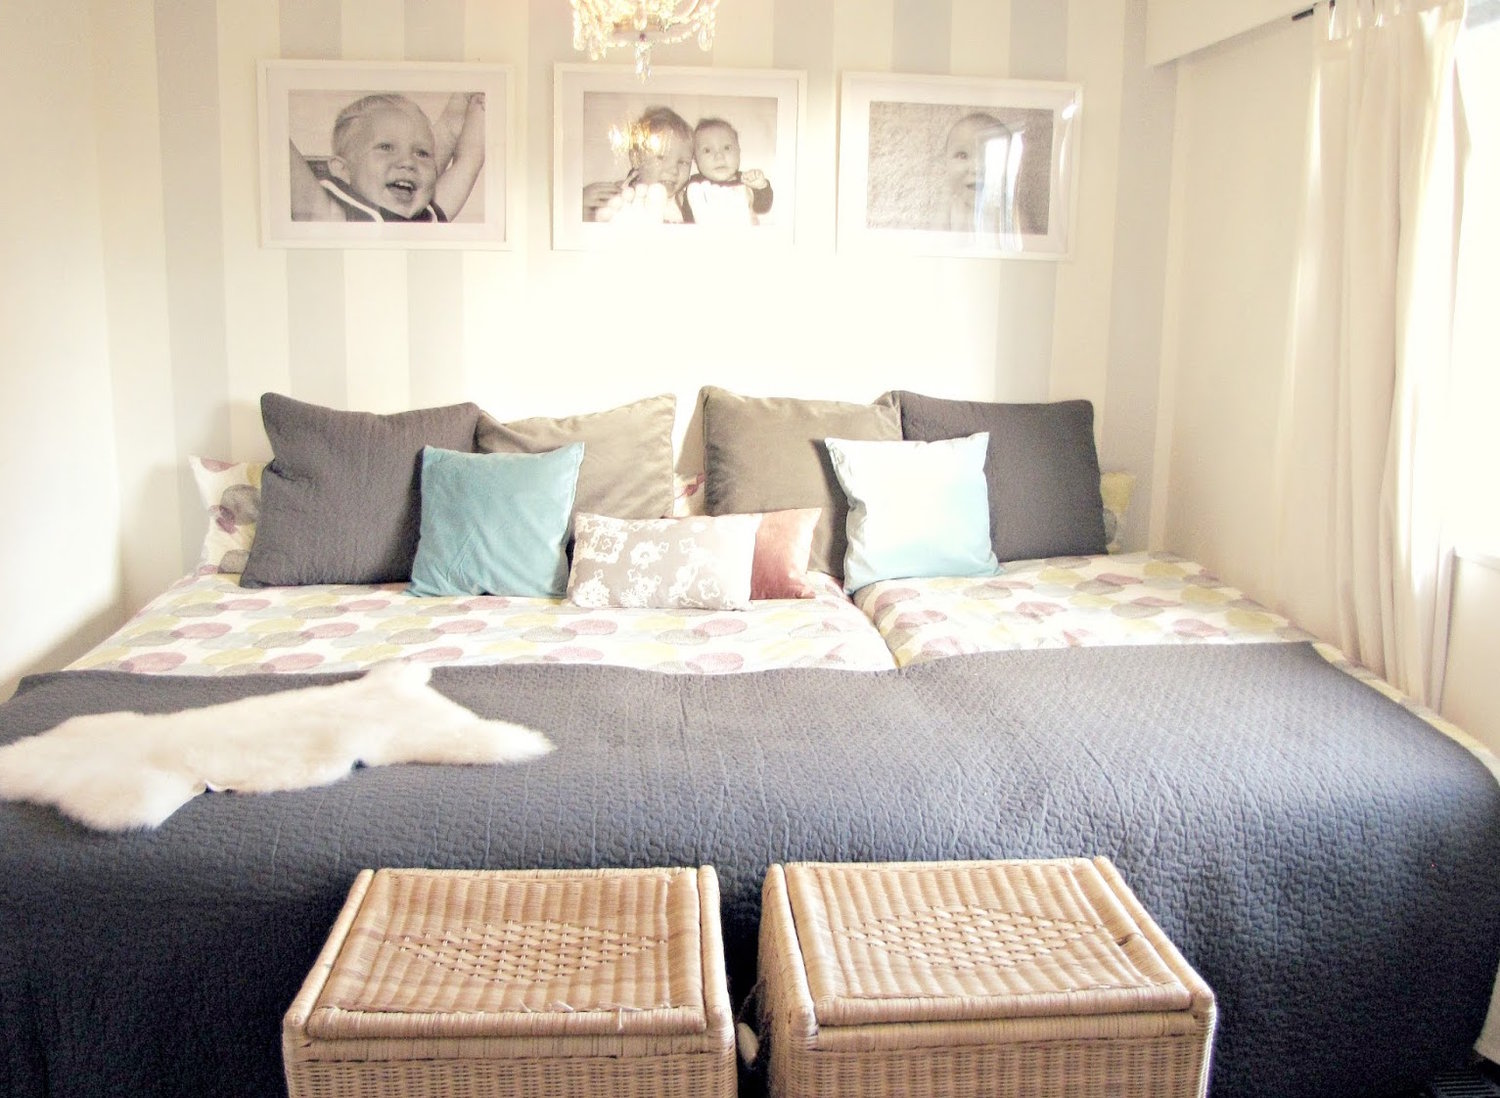 furniture for your bedroom. Furniture For Your Bedroom F